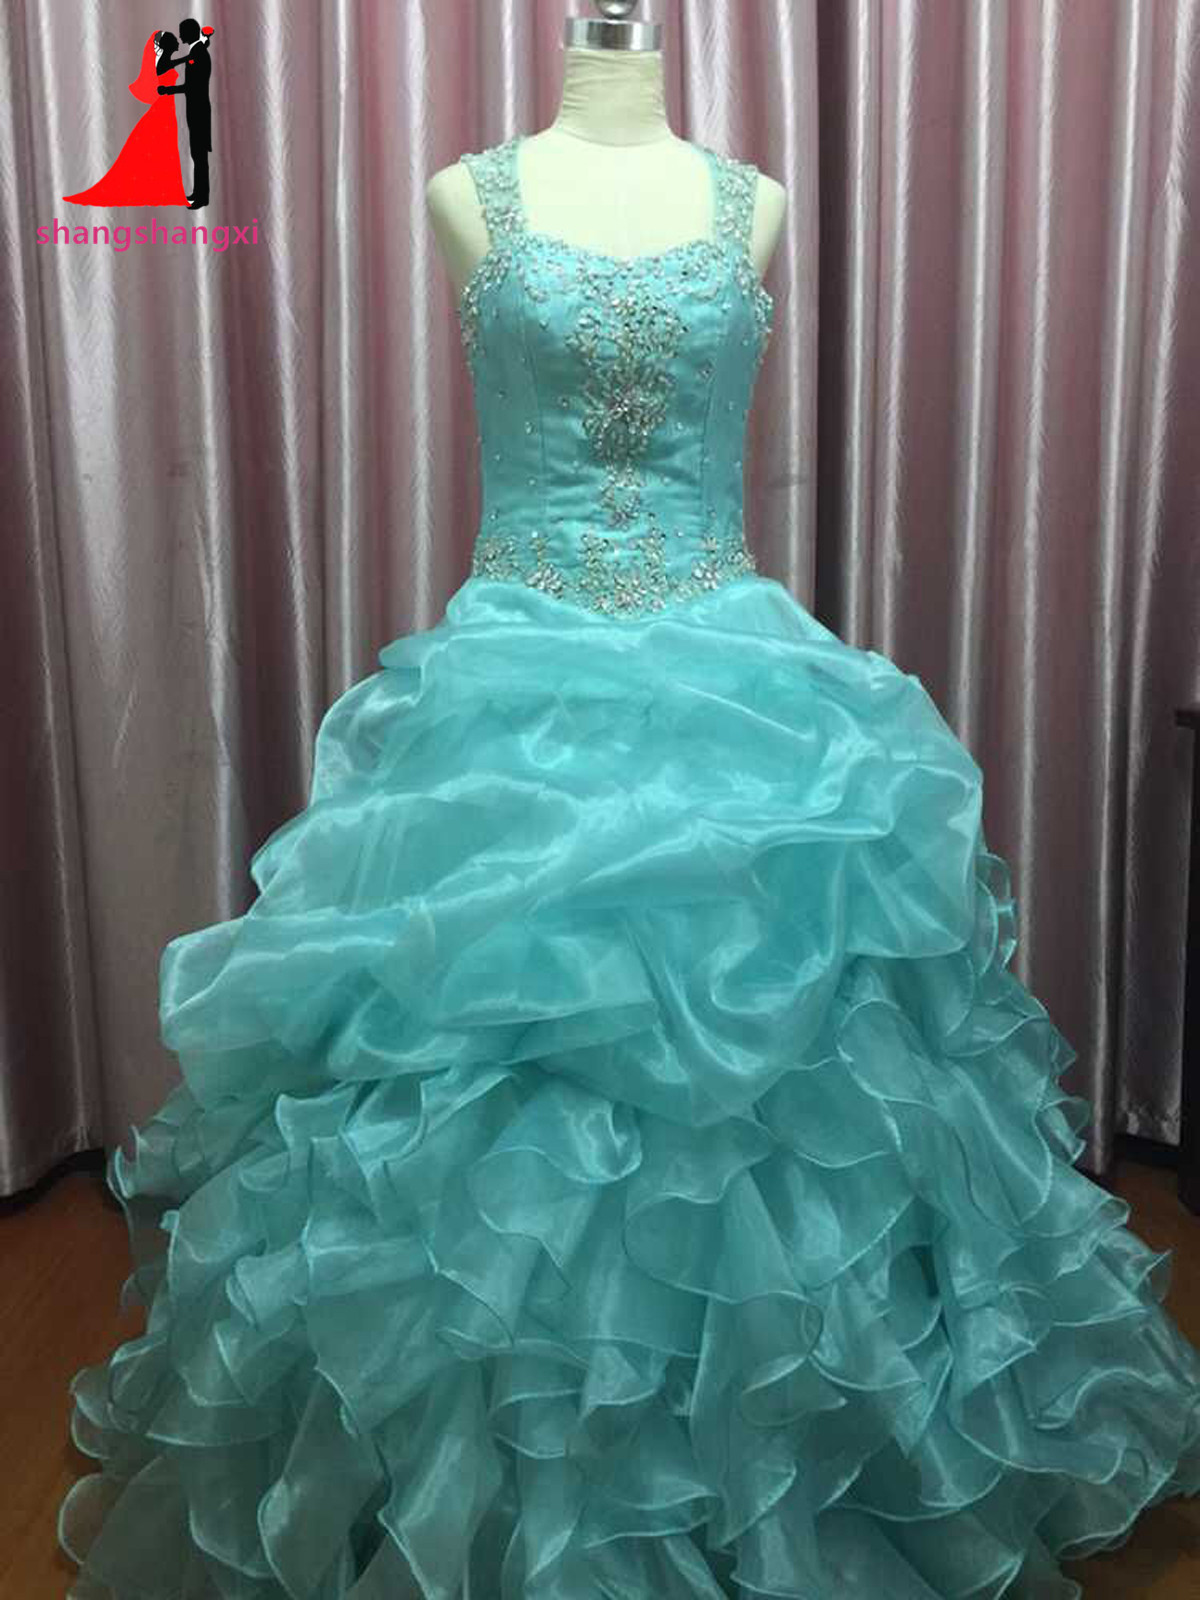 Online Get Cheap Masquerade Ball Gowns -Aliexpress.com | Alibaba Group